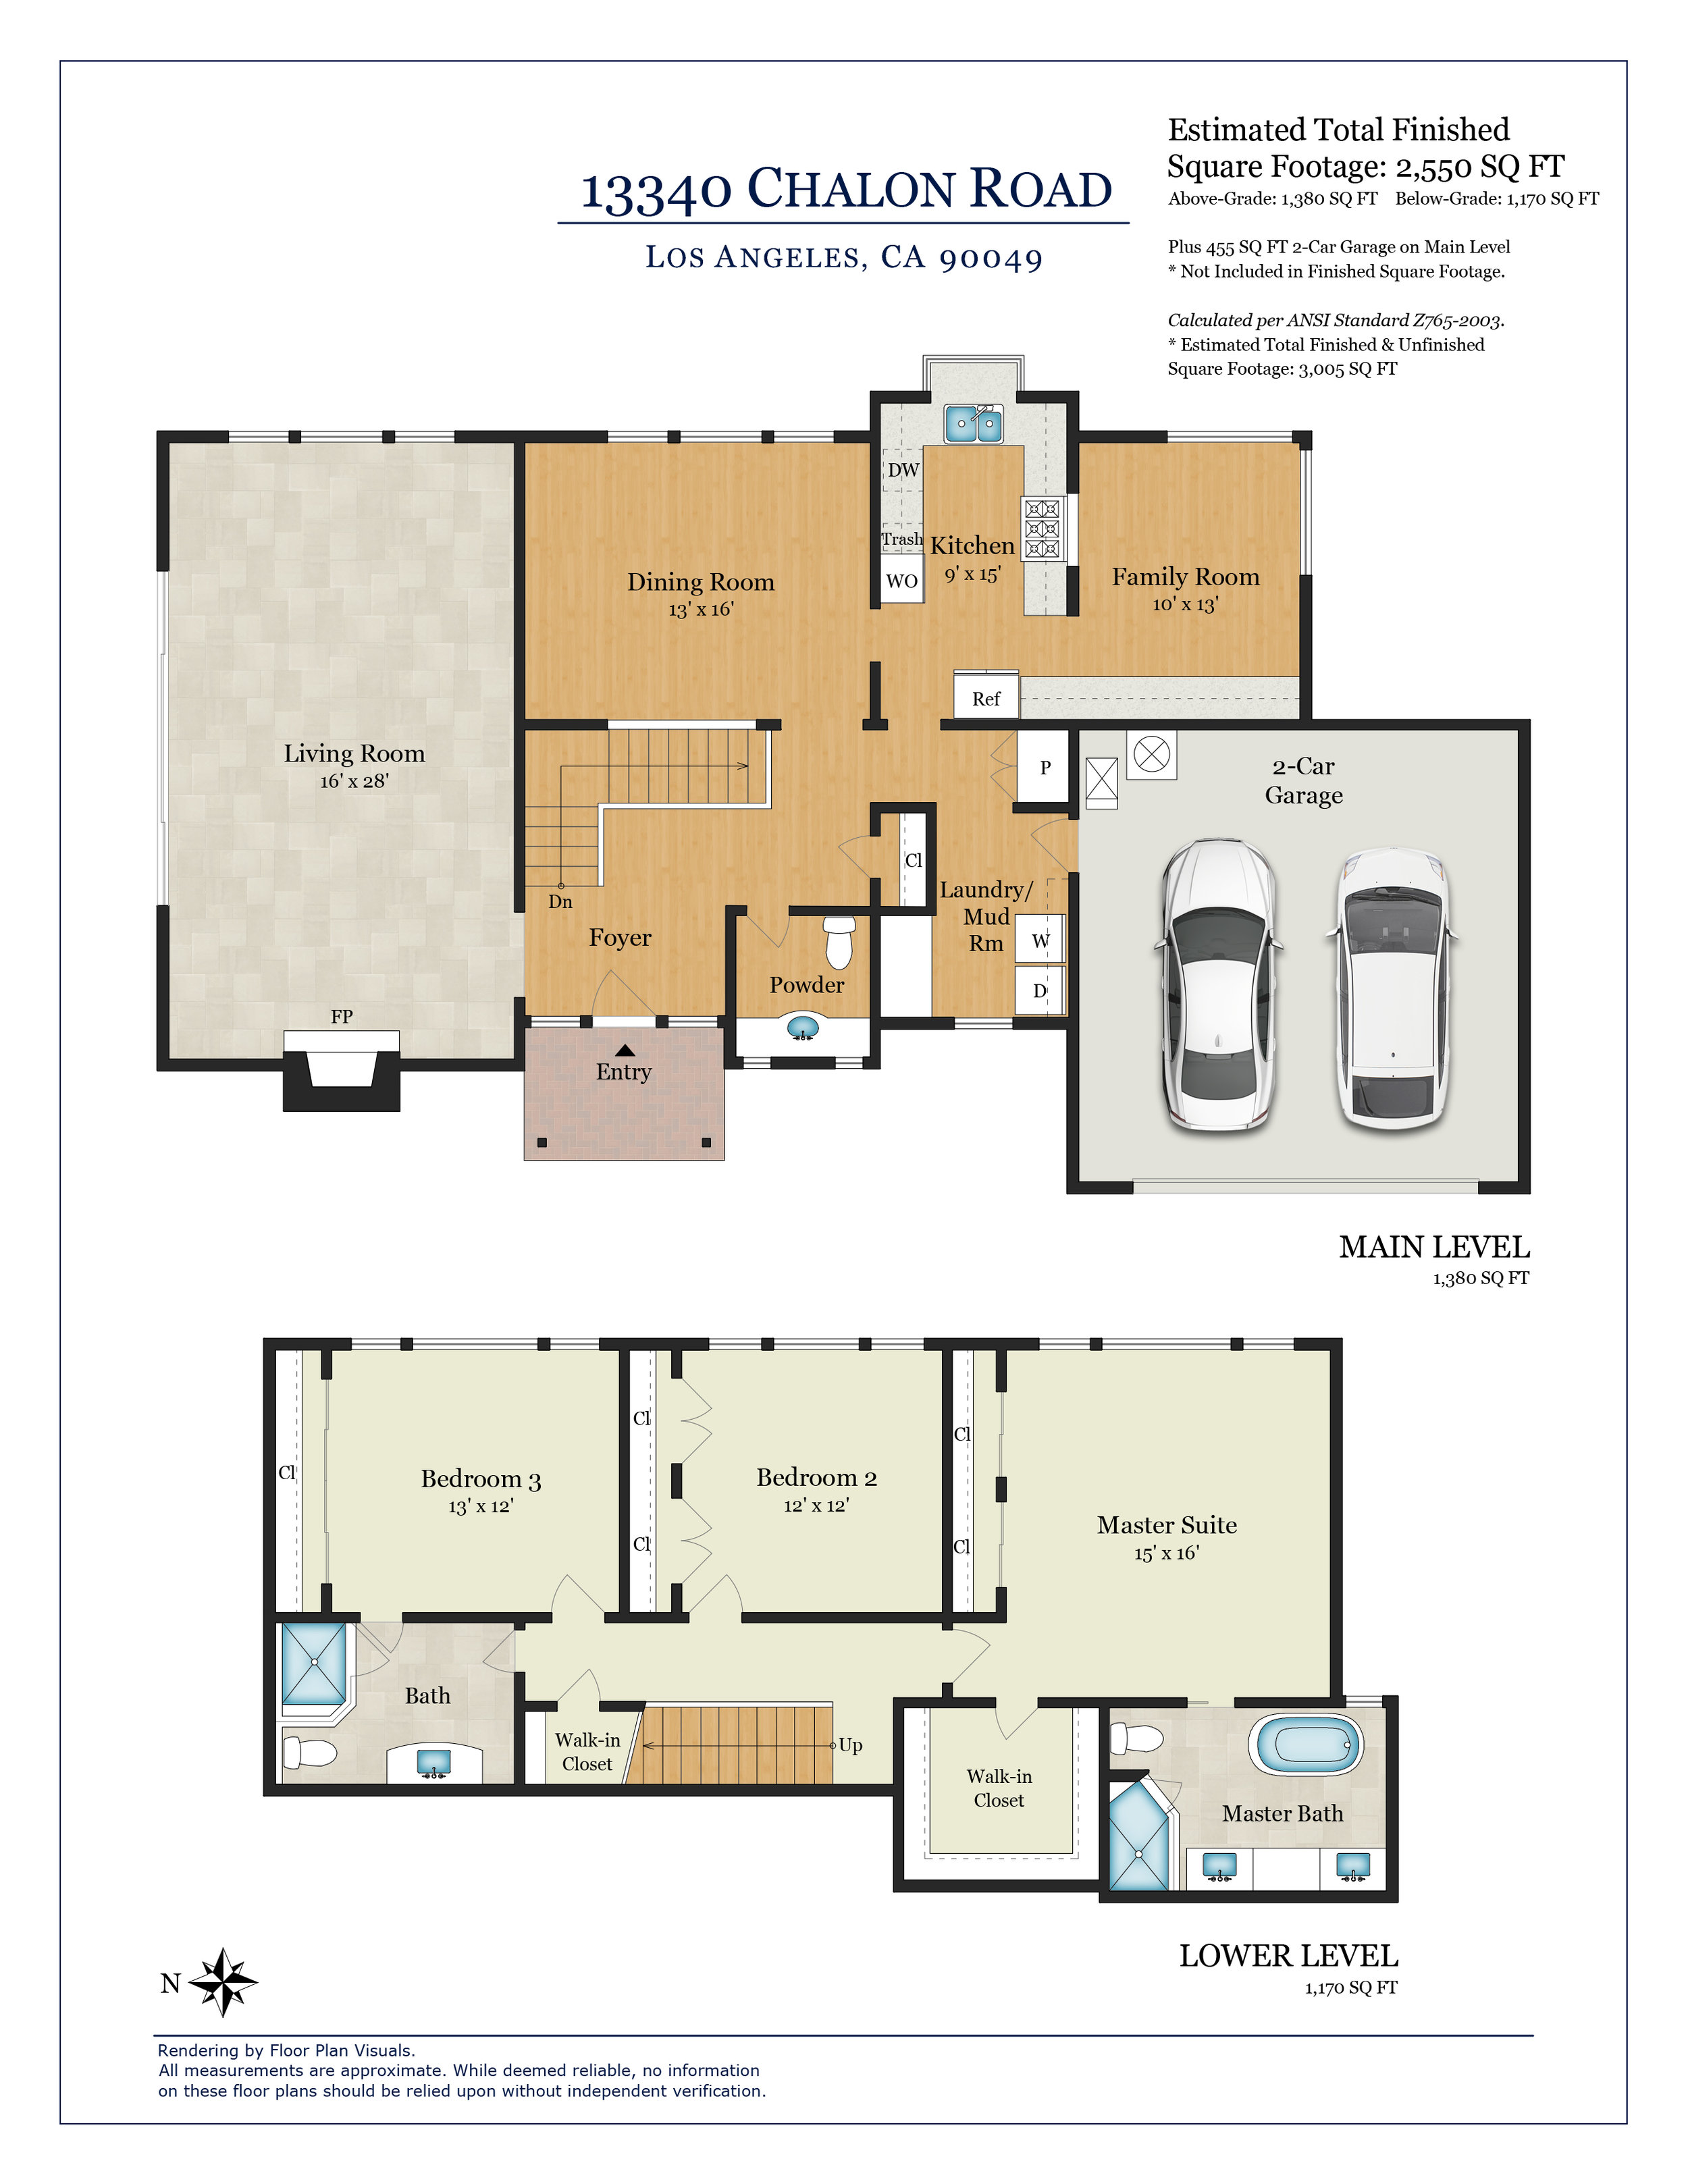 13340 Chalon Road Floor Plan With Header.jpg